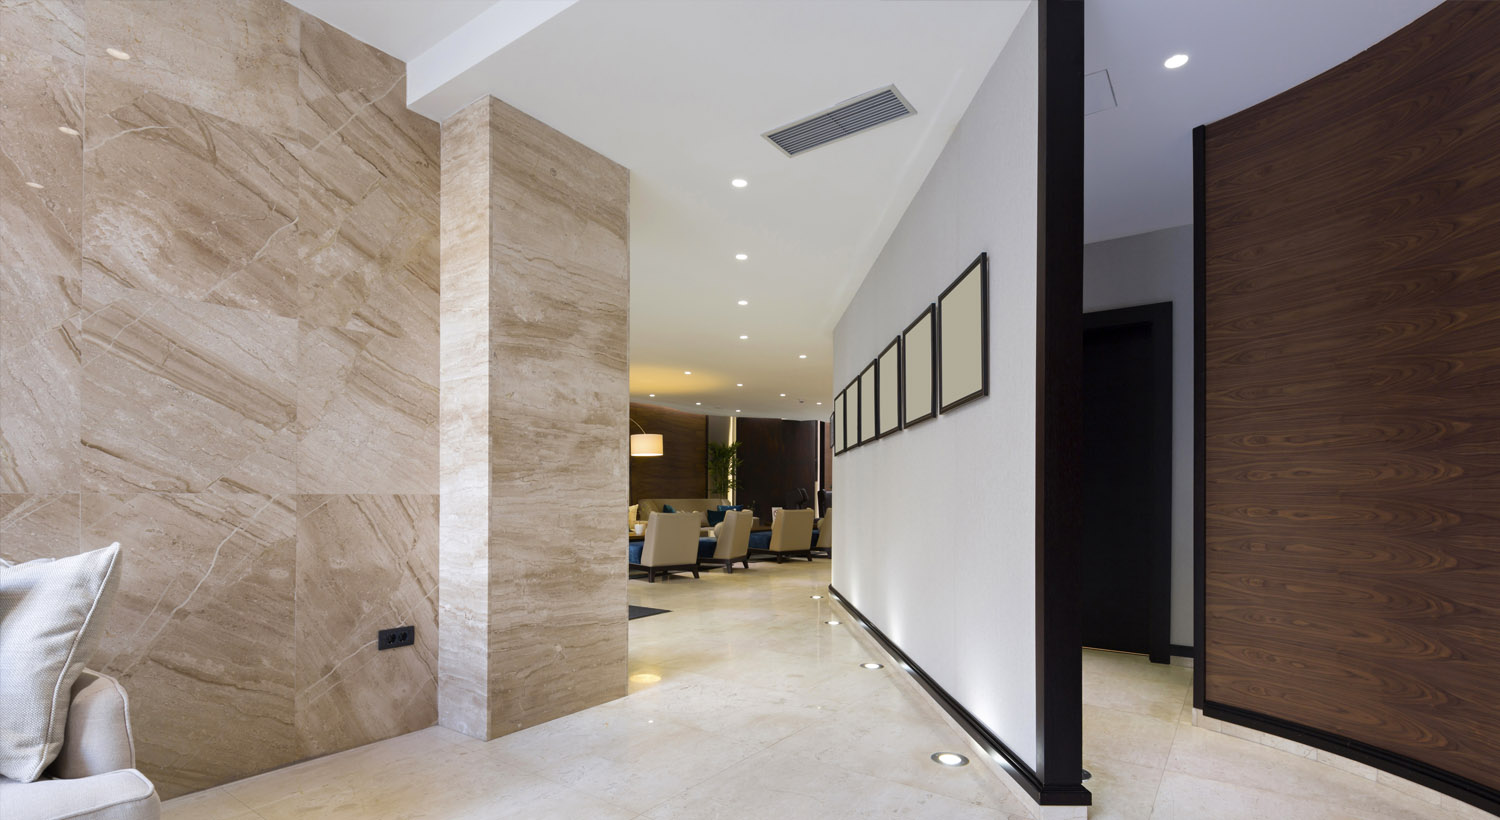 Why Soundproof your walls?